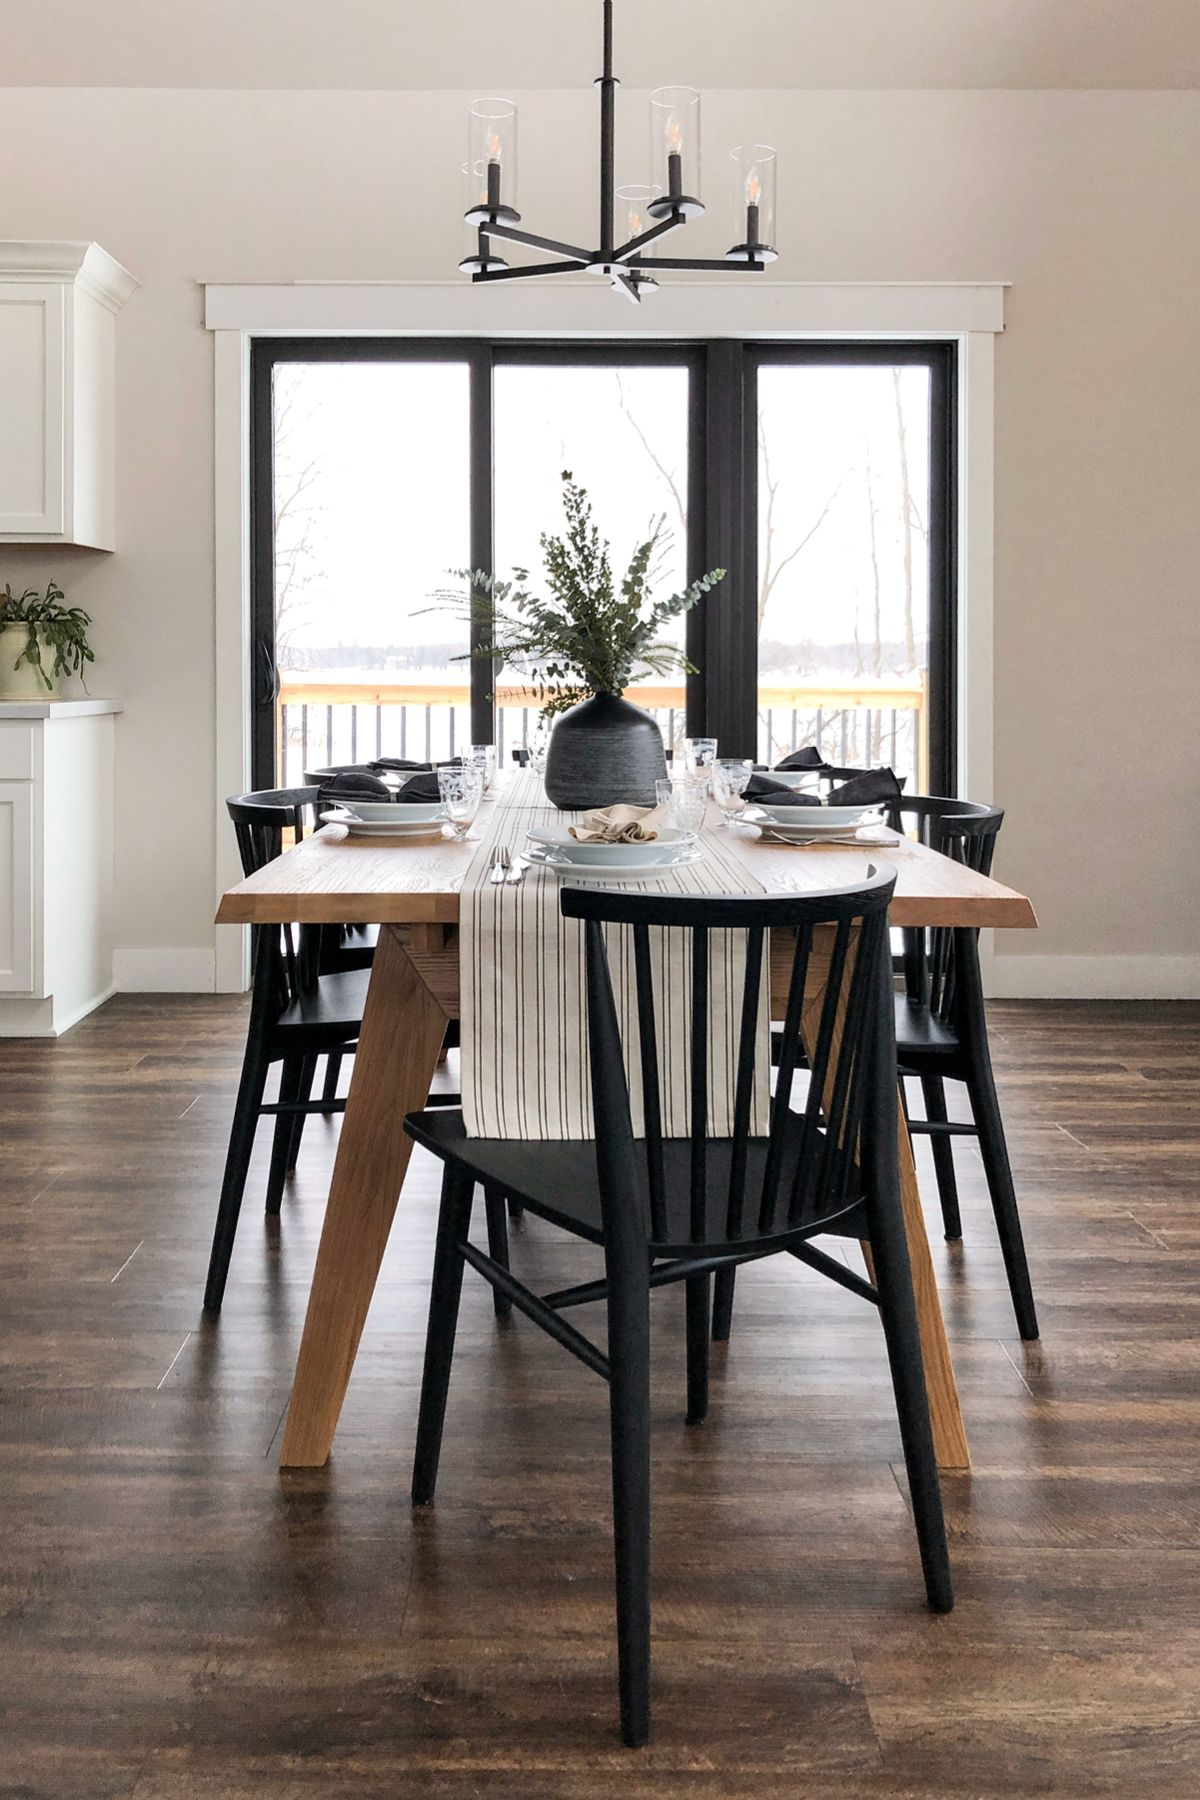 Rus Black Dining Chair In 2020 Dinning Room Design Dining Room Small Scandinavian Dining Room